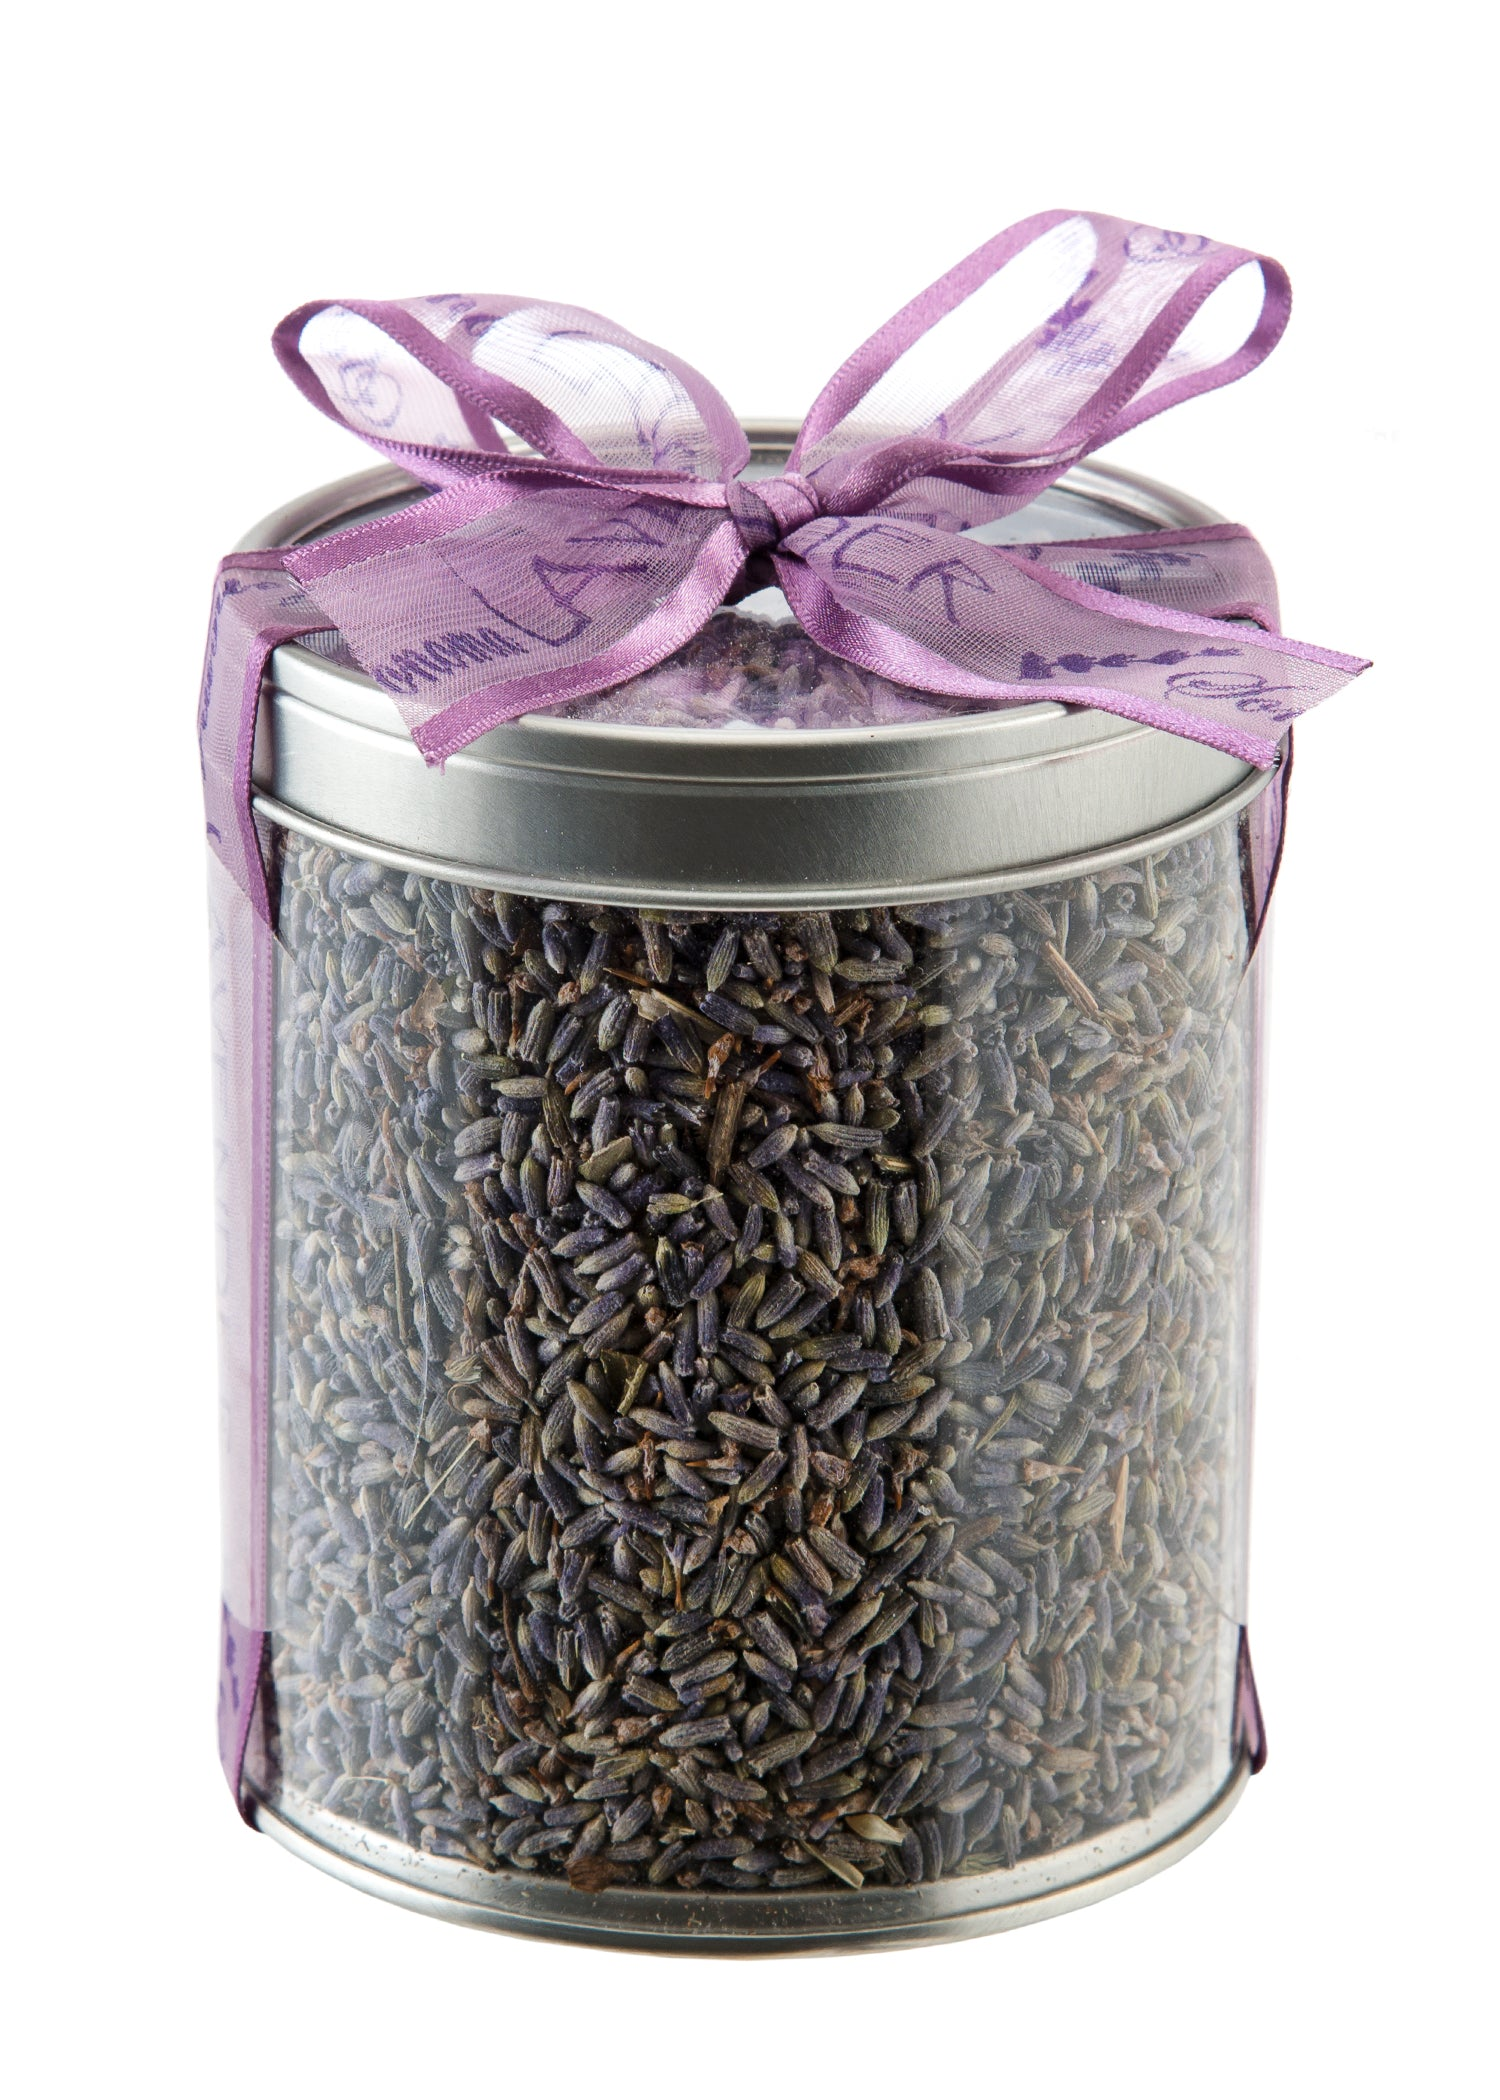 Dried French Lavender in Canister